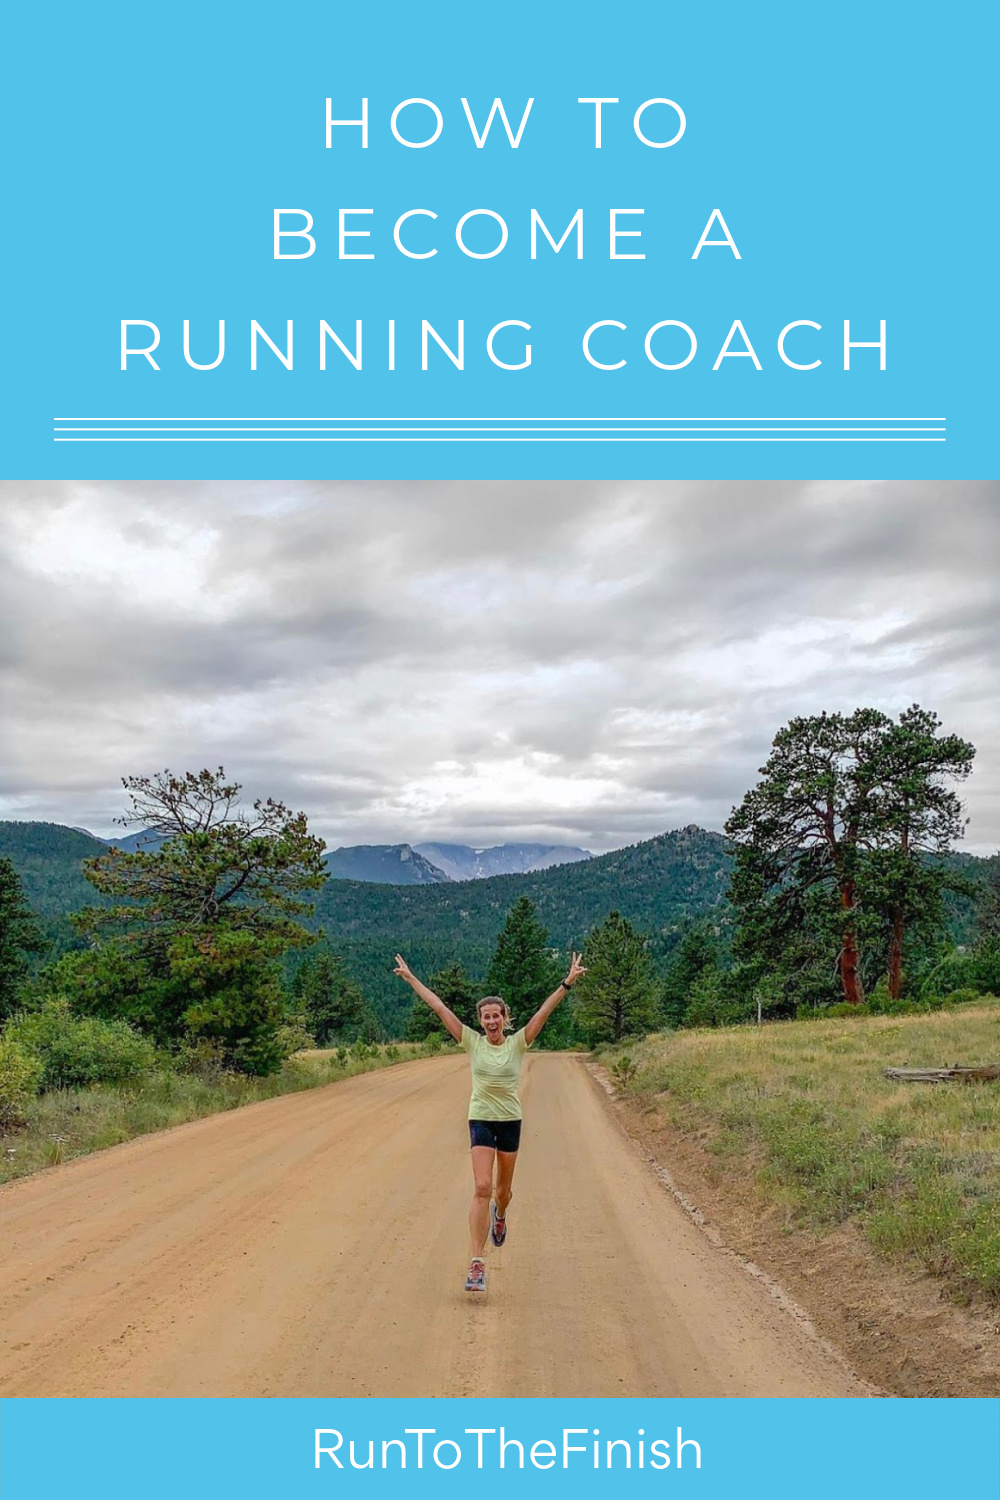 How to Become a Running Coach